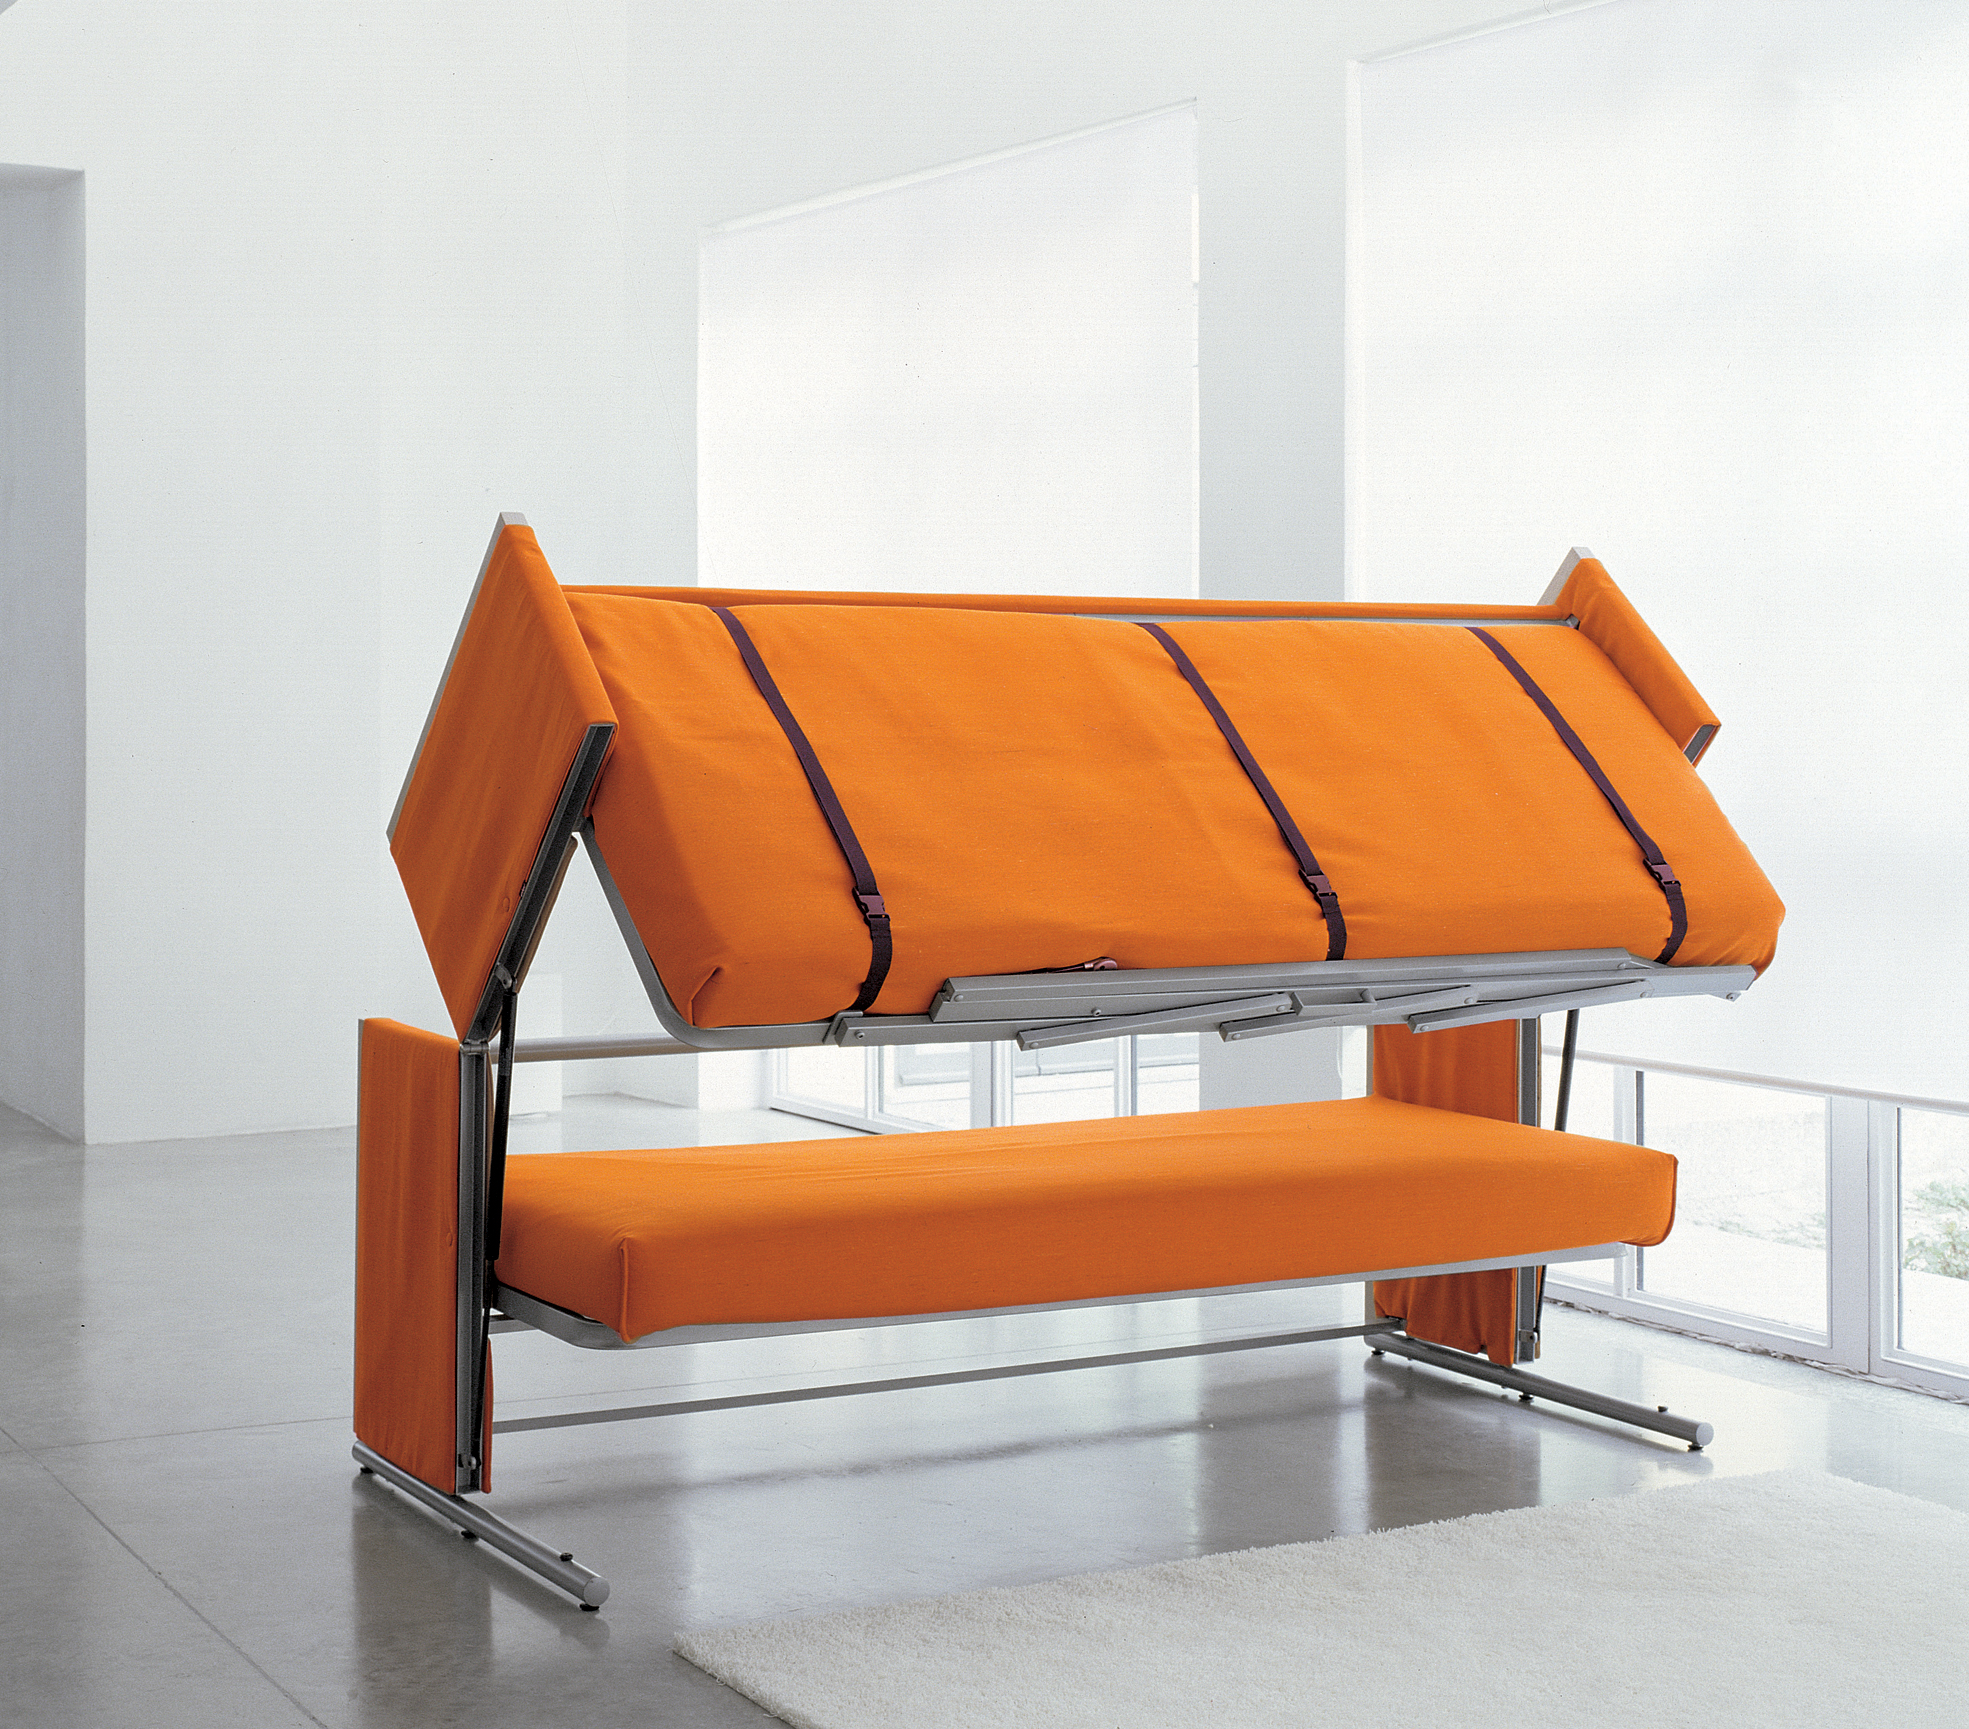 Ordinaire Sofa Bunk Bed